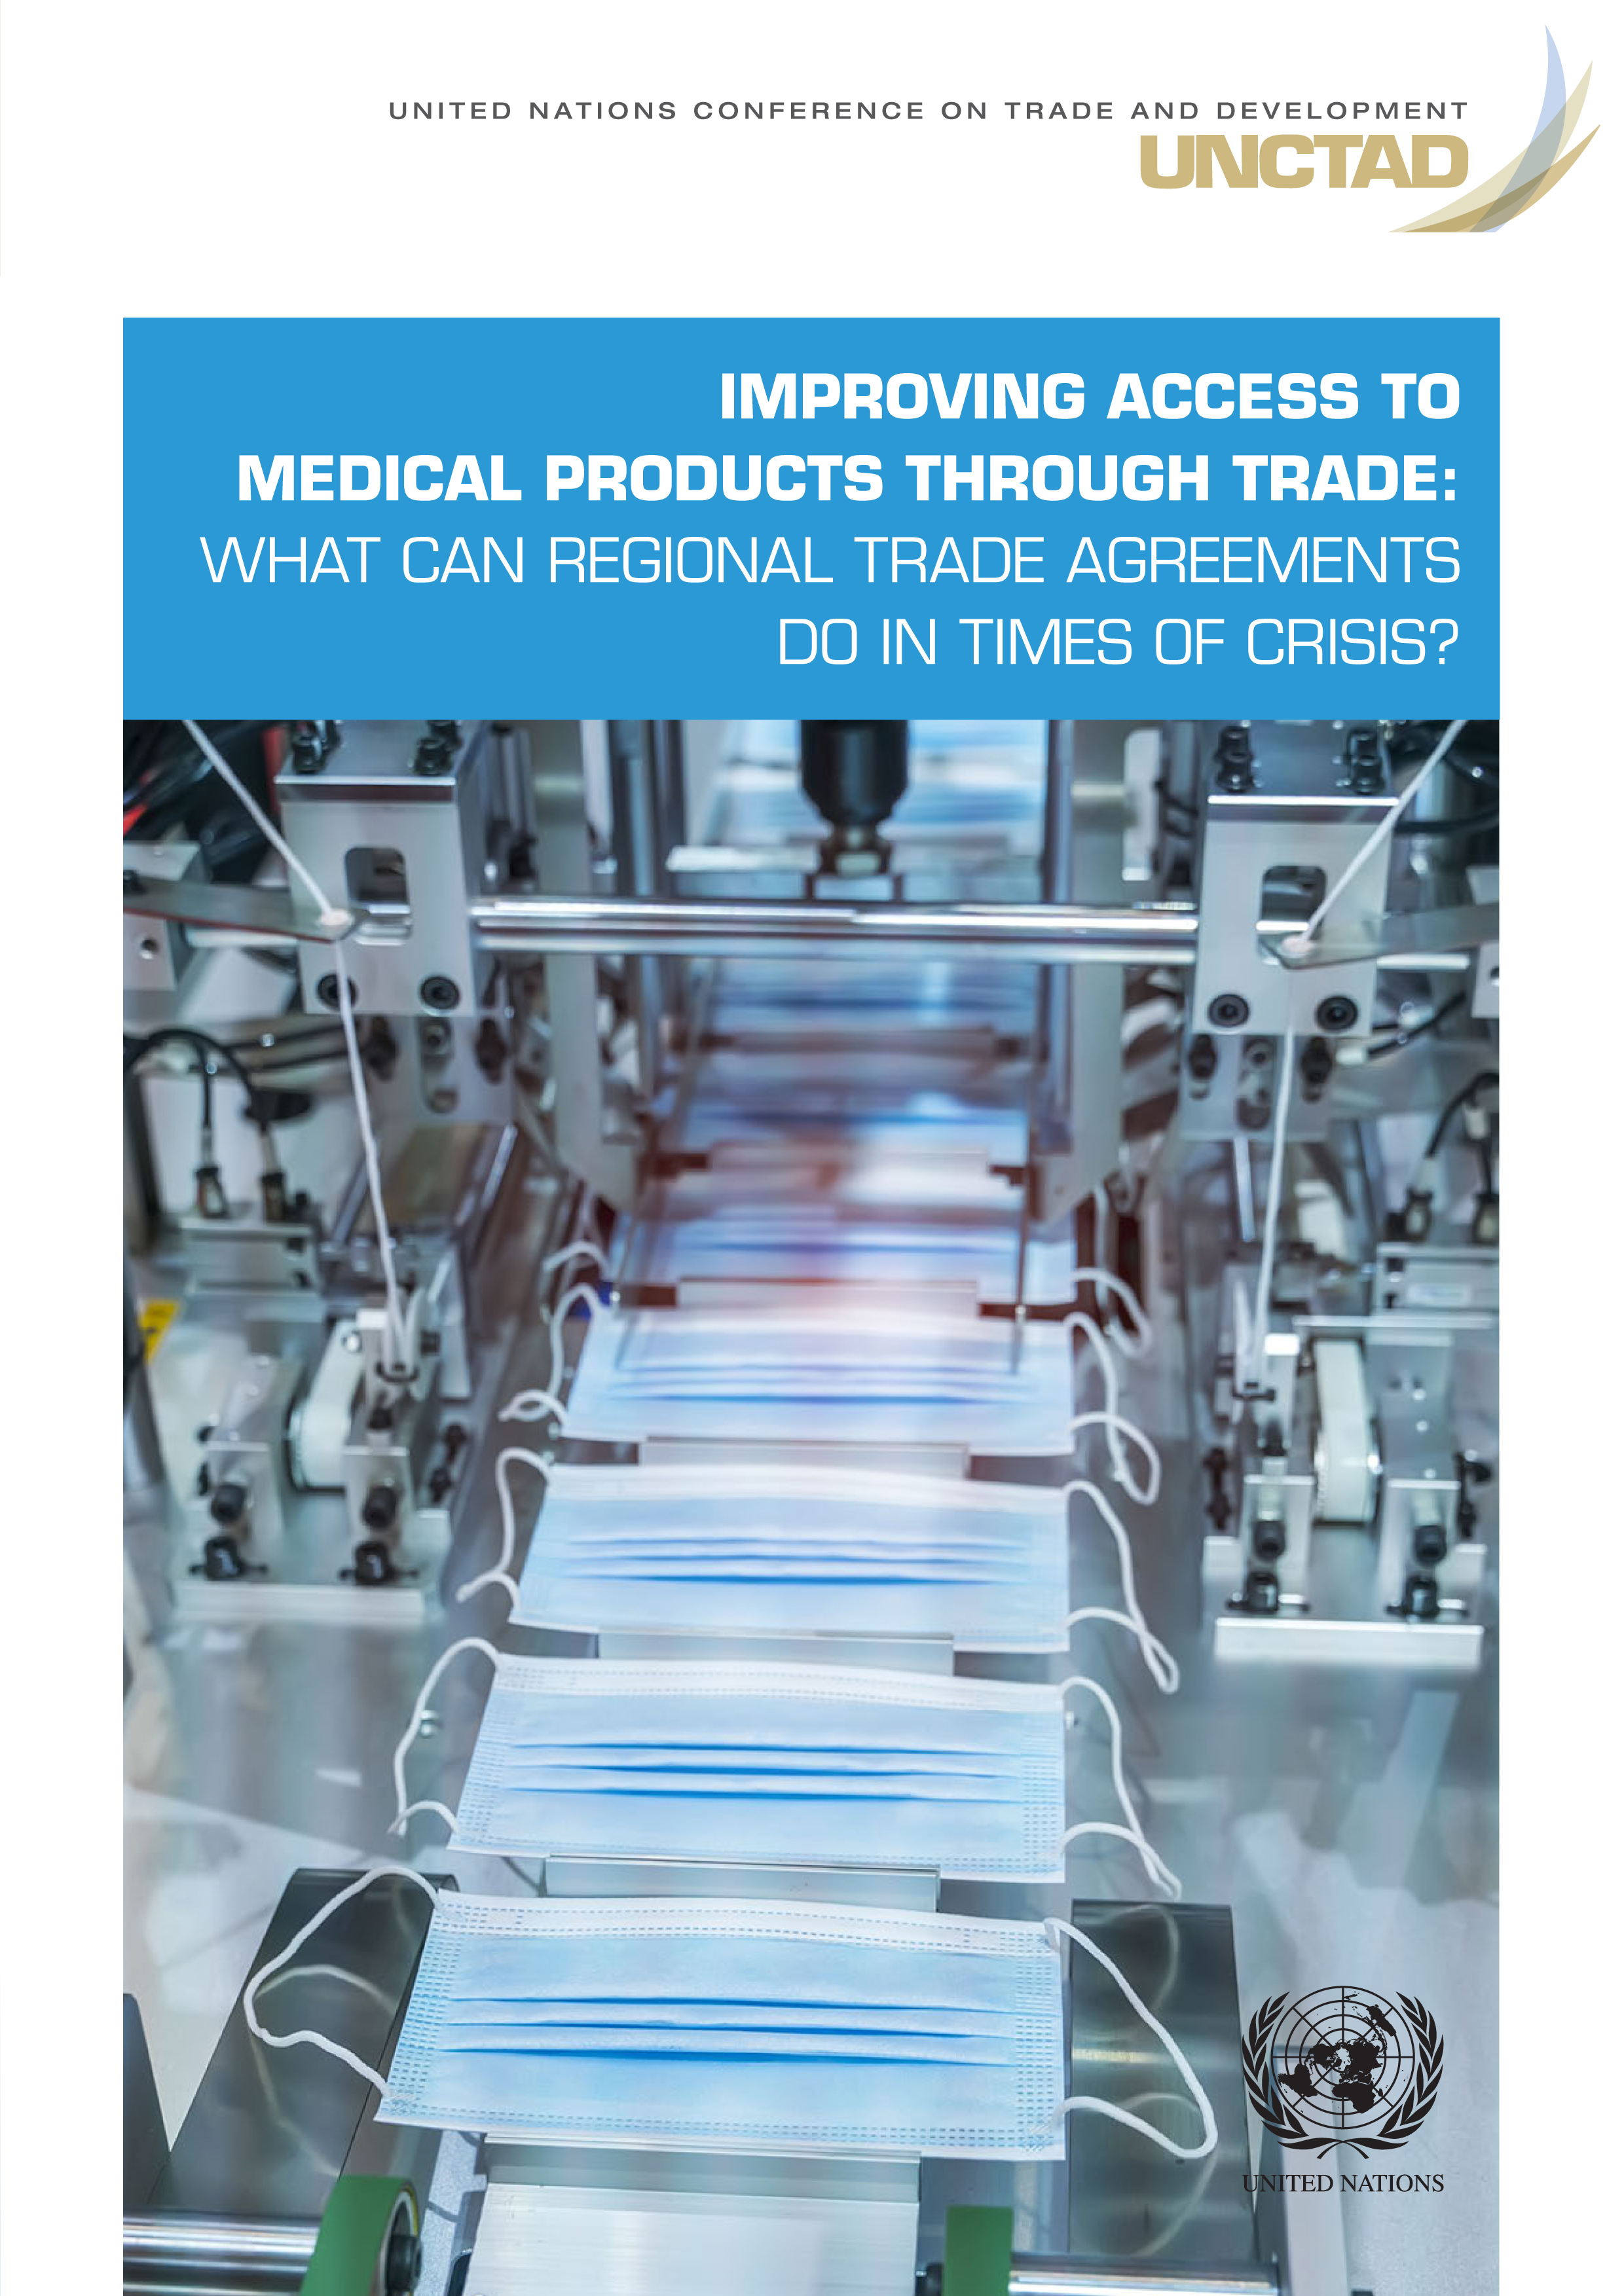 IMPROV ACCESS TO MEDICAL PRODUCTS